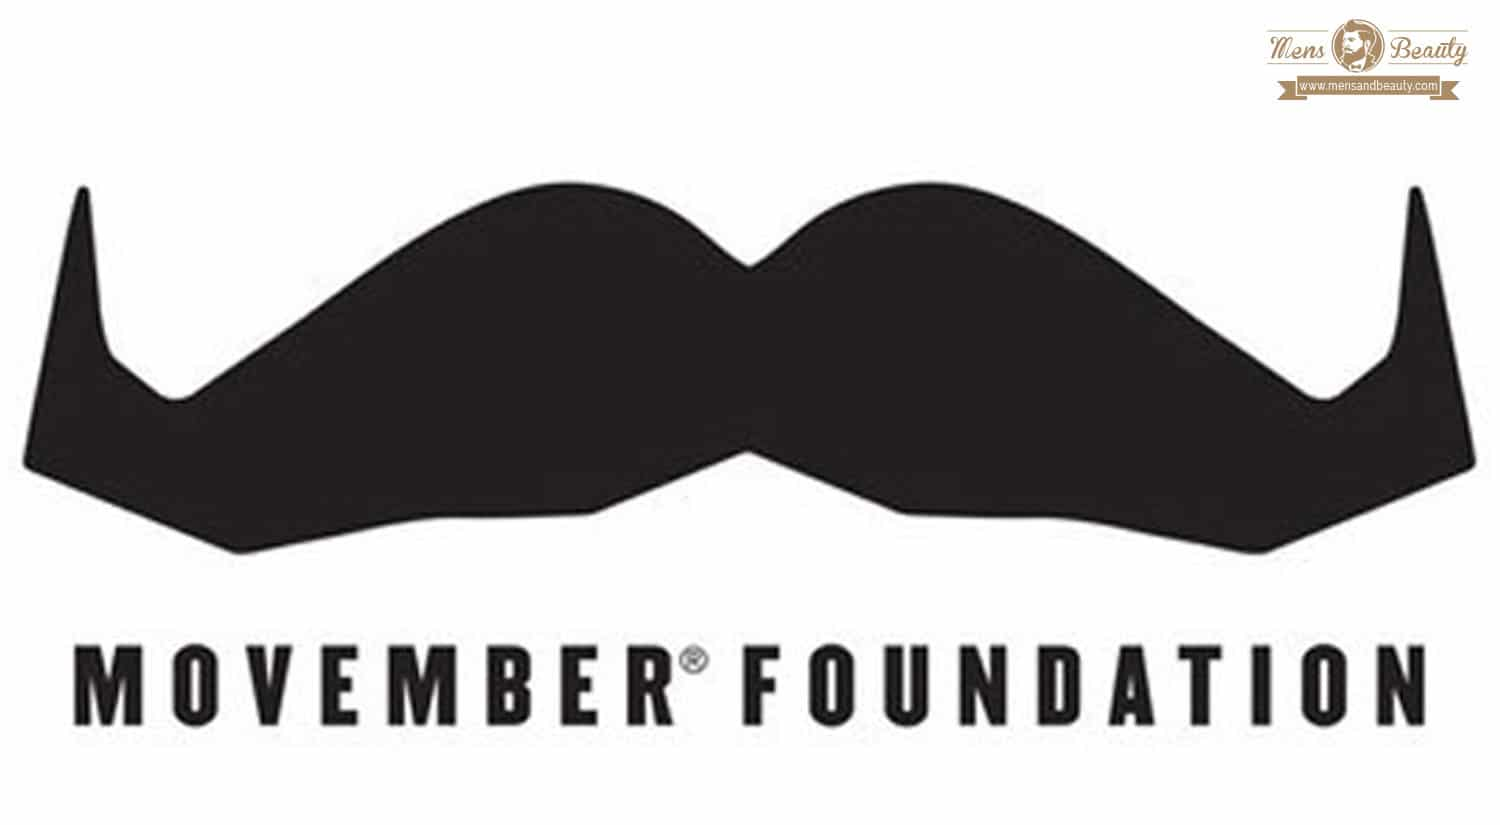 movember mustache movement foundation which is international month of man beauty care health